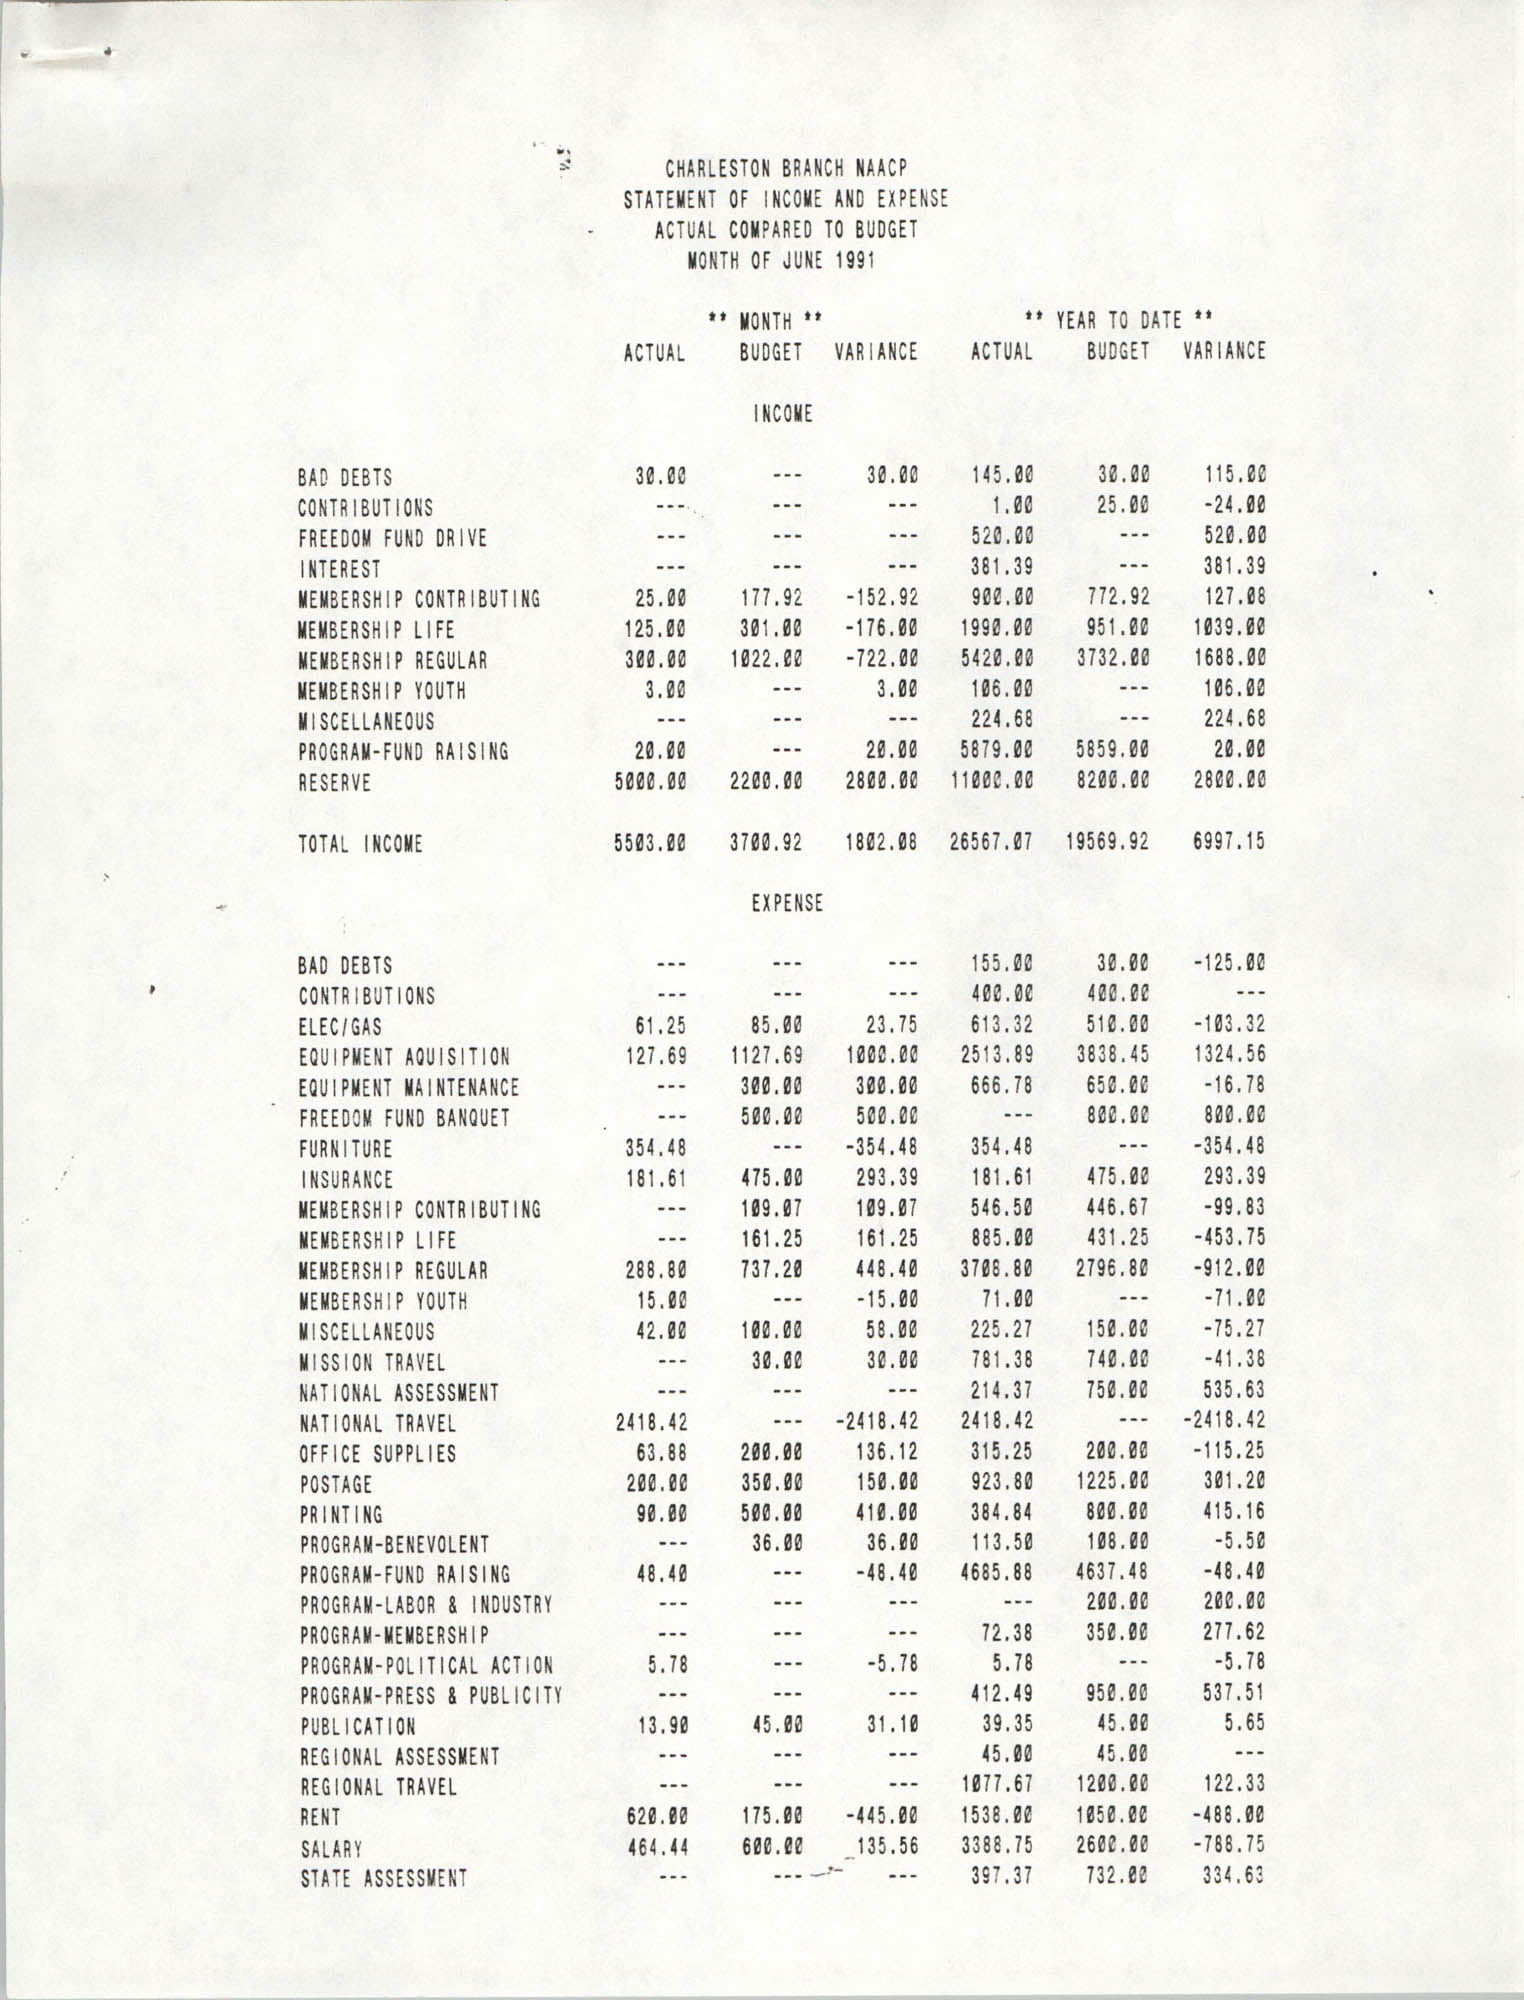 Charleston Branch of the NAACP Statement of Income and Expense, June 1991, Page 1